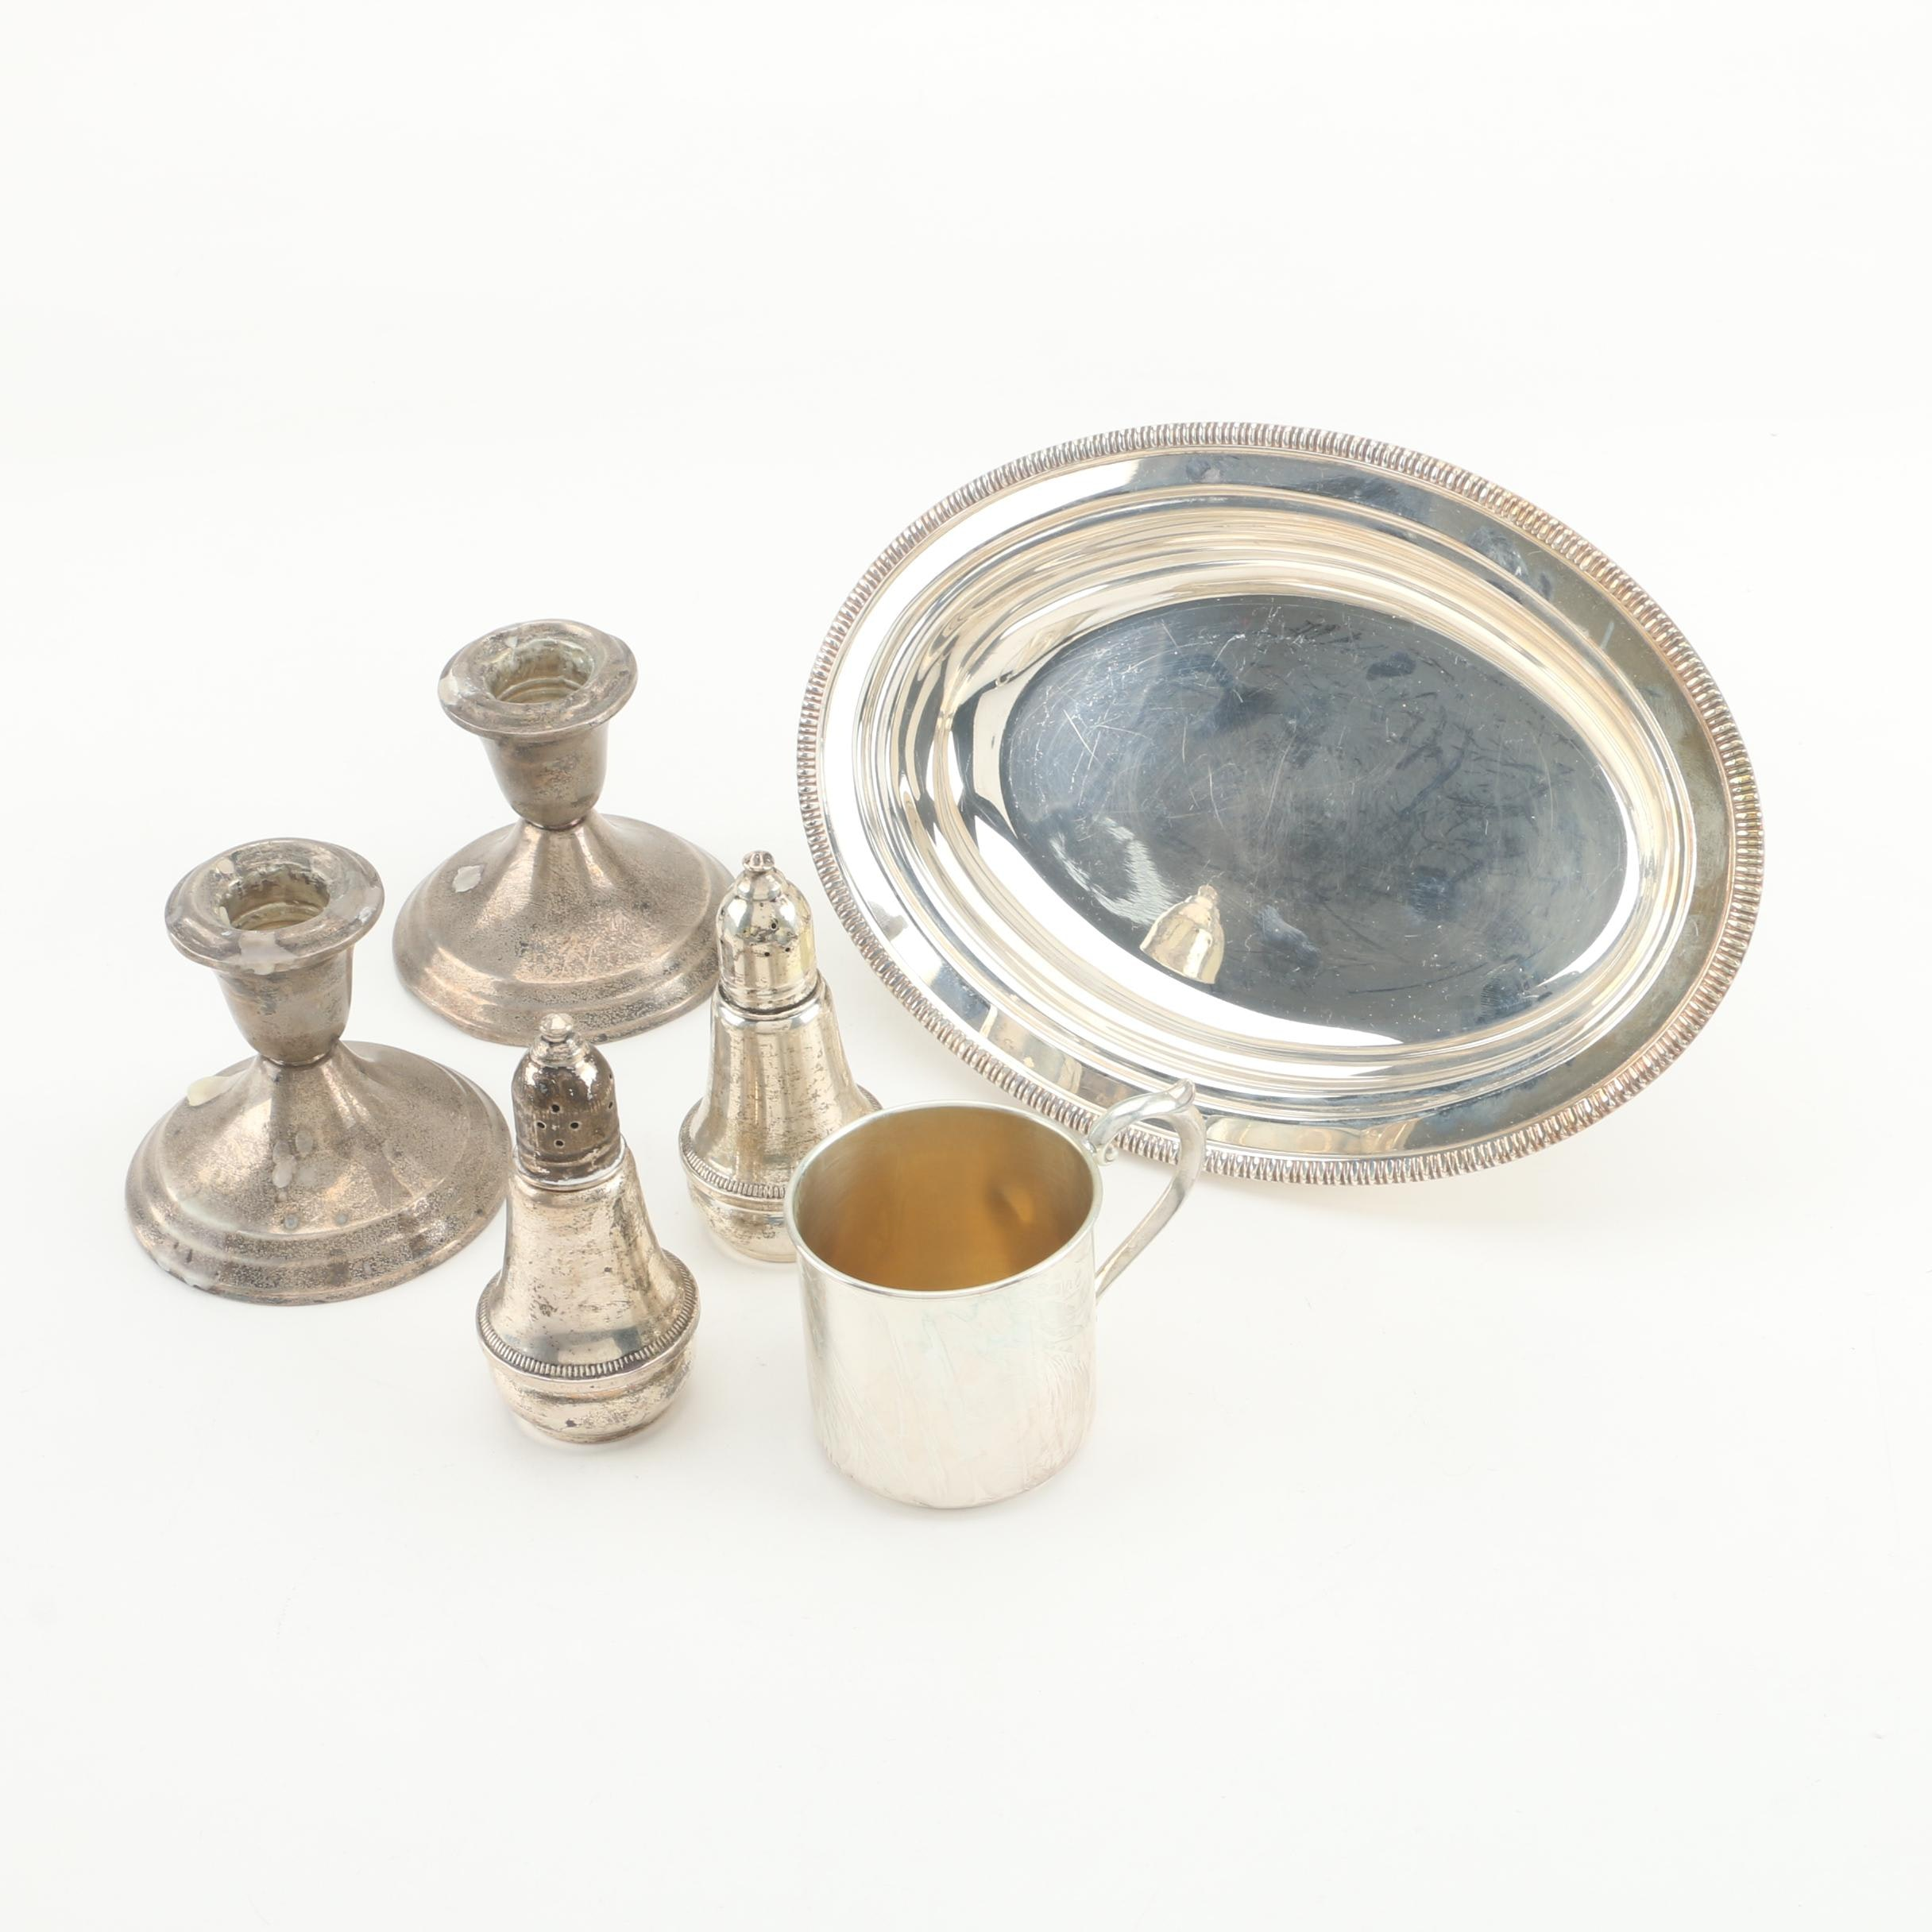 Gorham Baby Cup and Candleholders with Other Sterling and Silver Plate Tableware